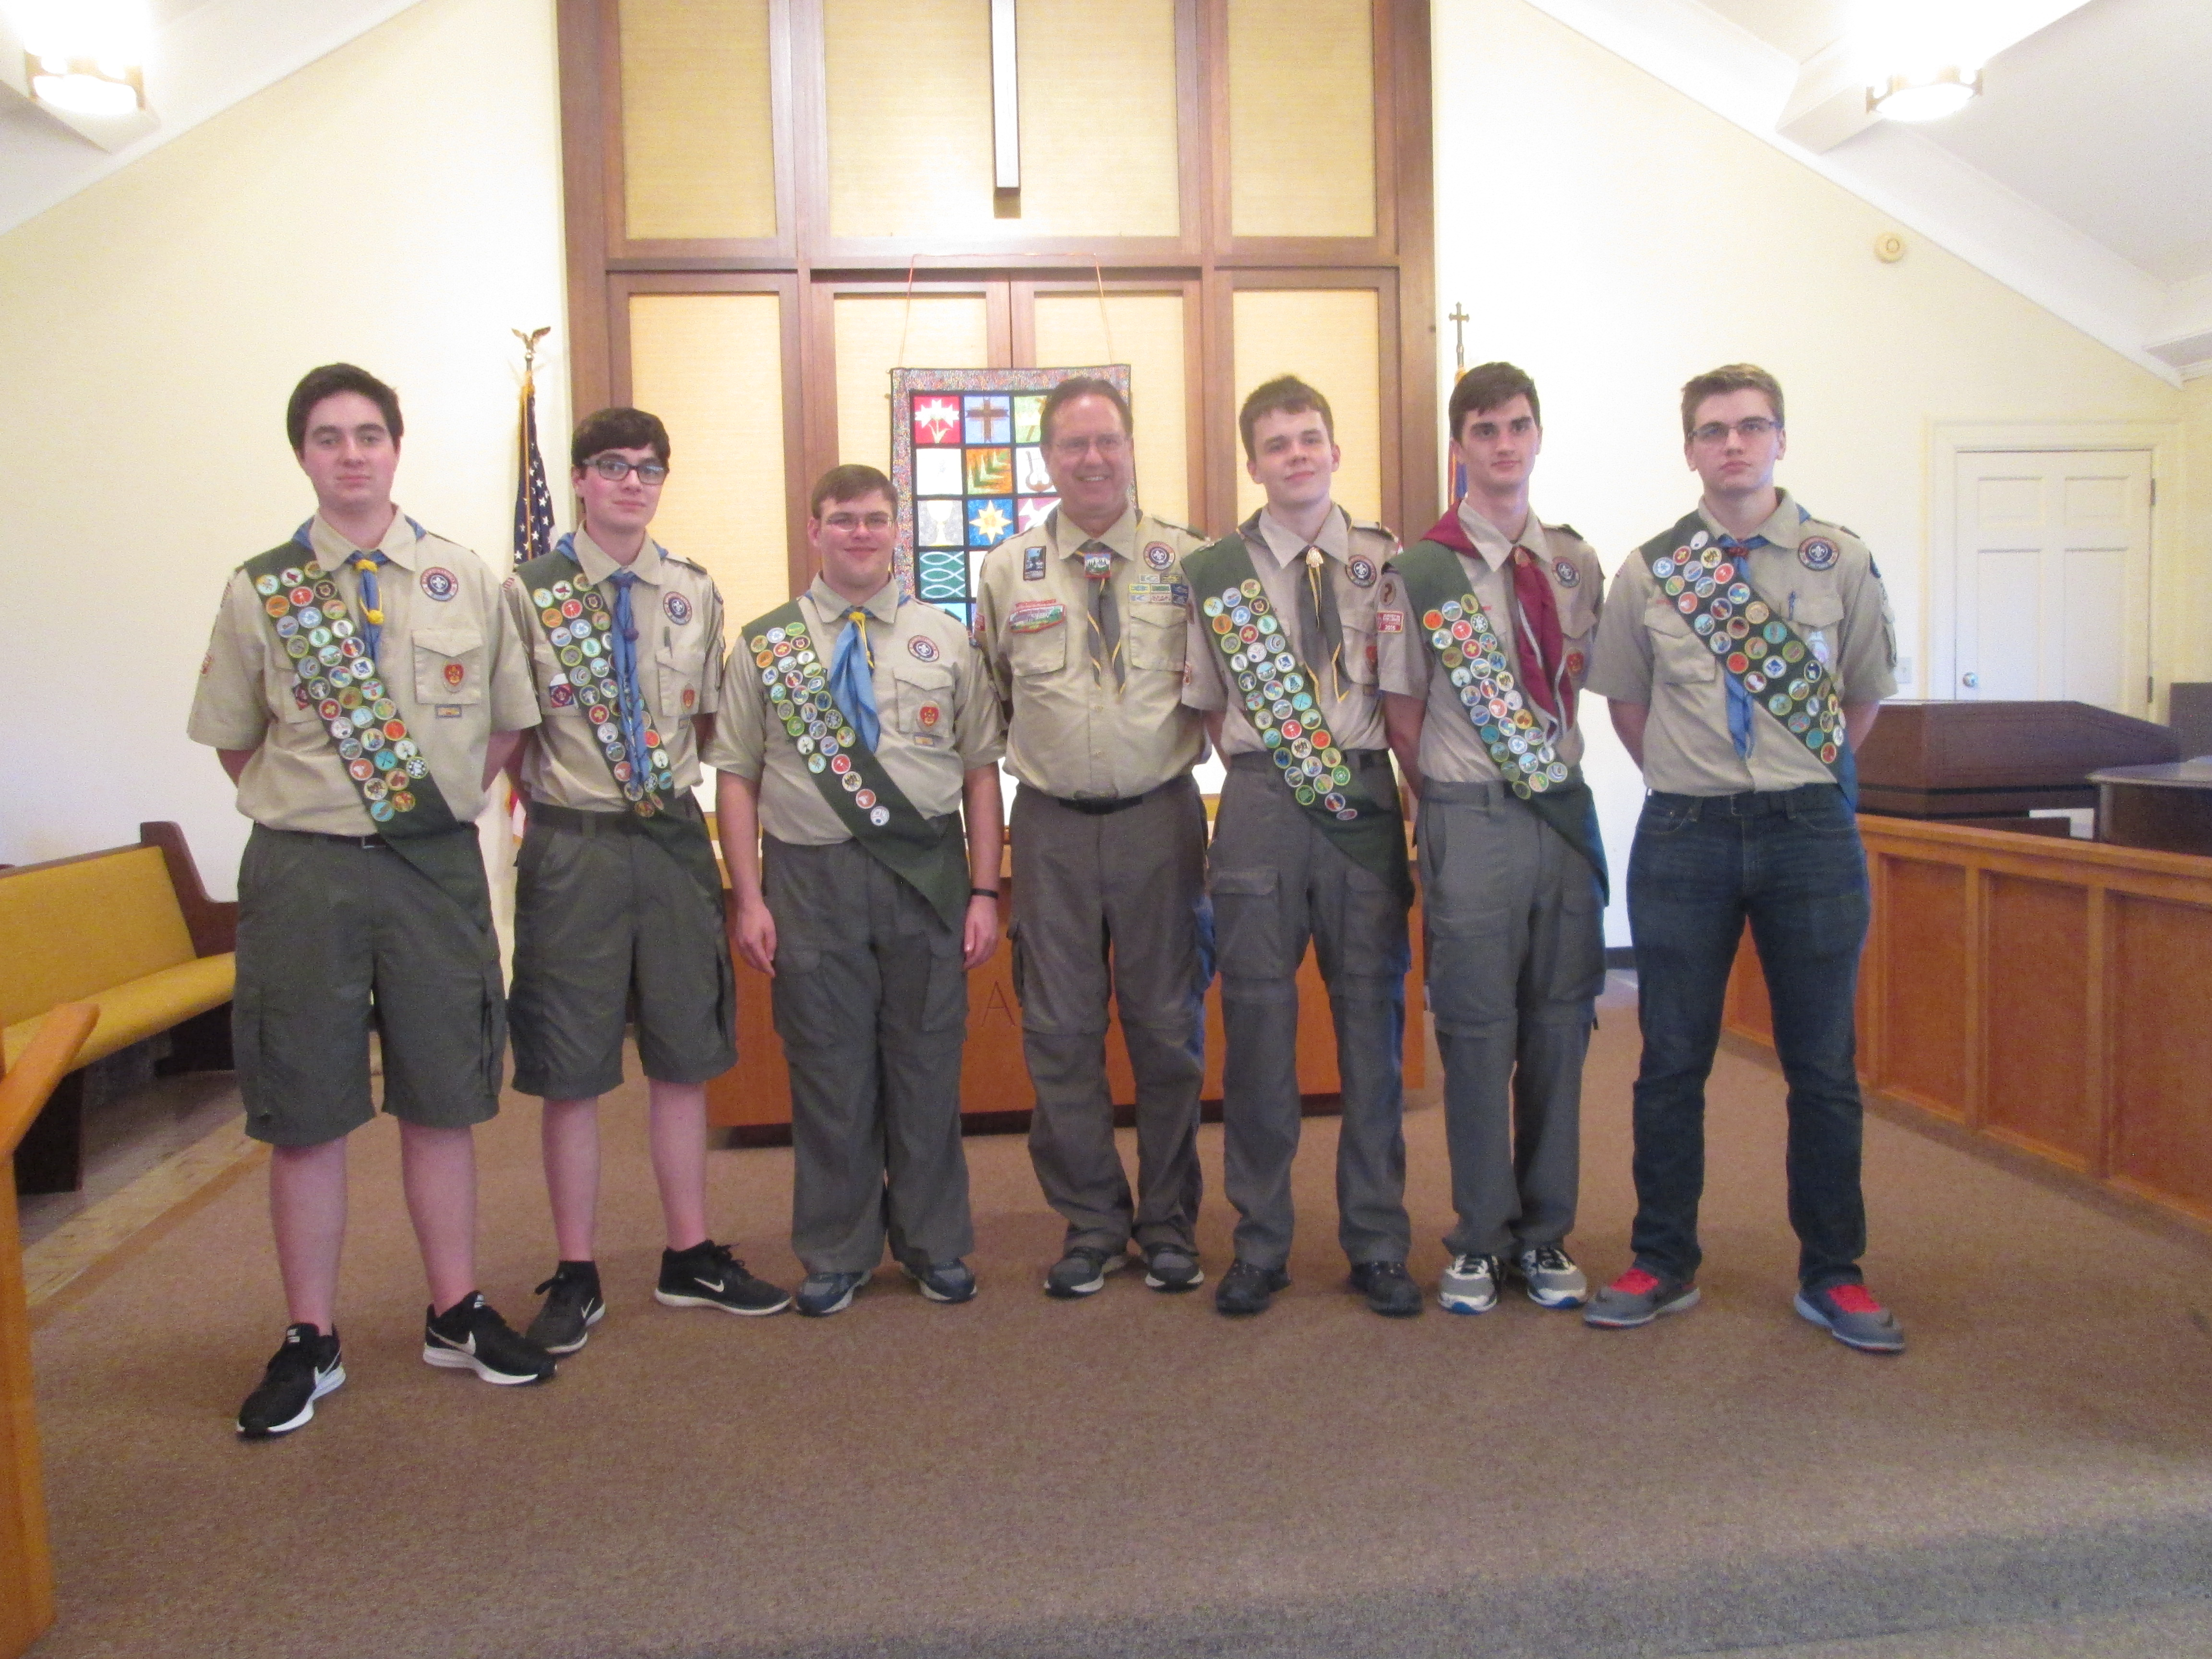 Teece is new Eagle Scout